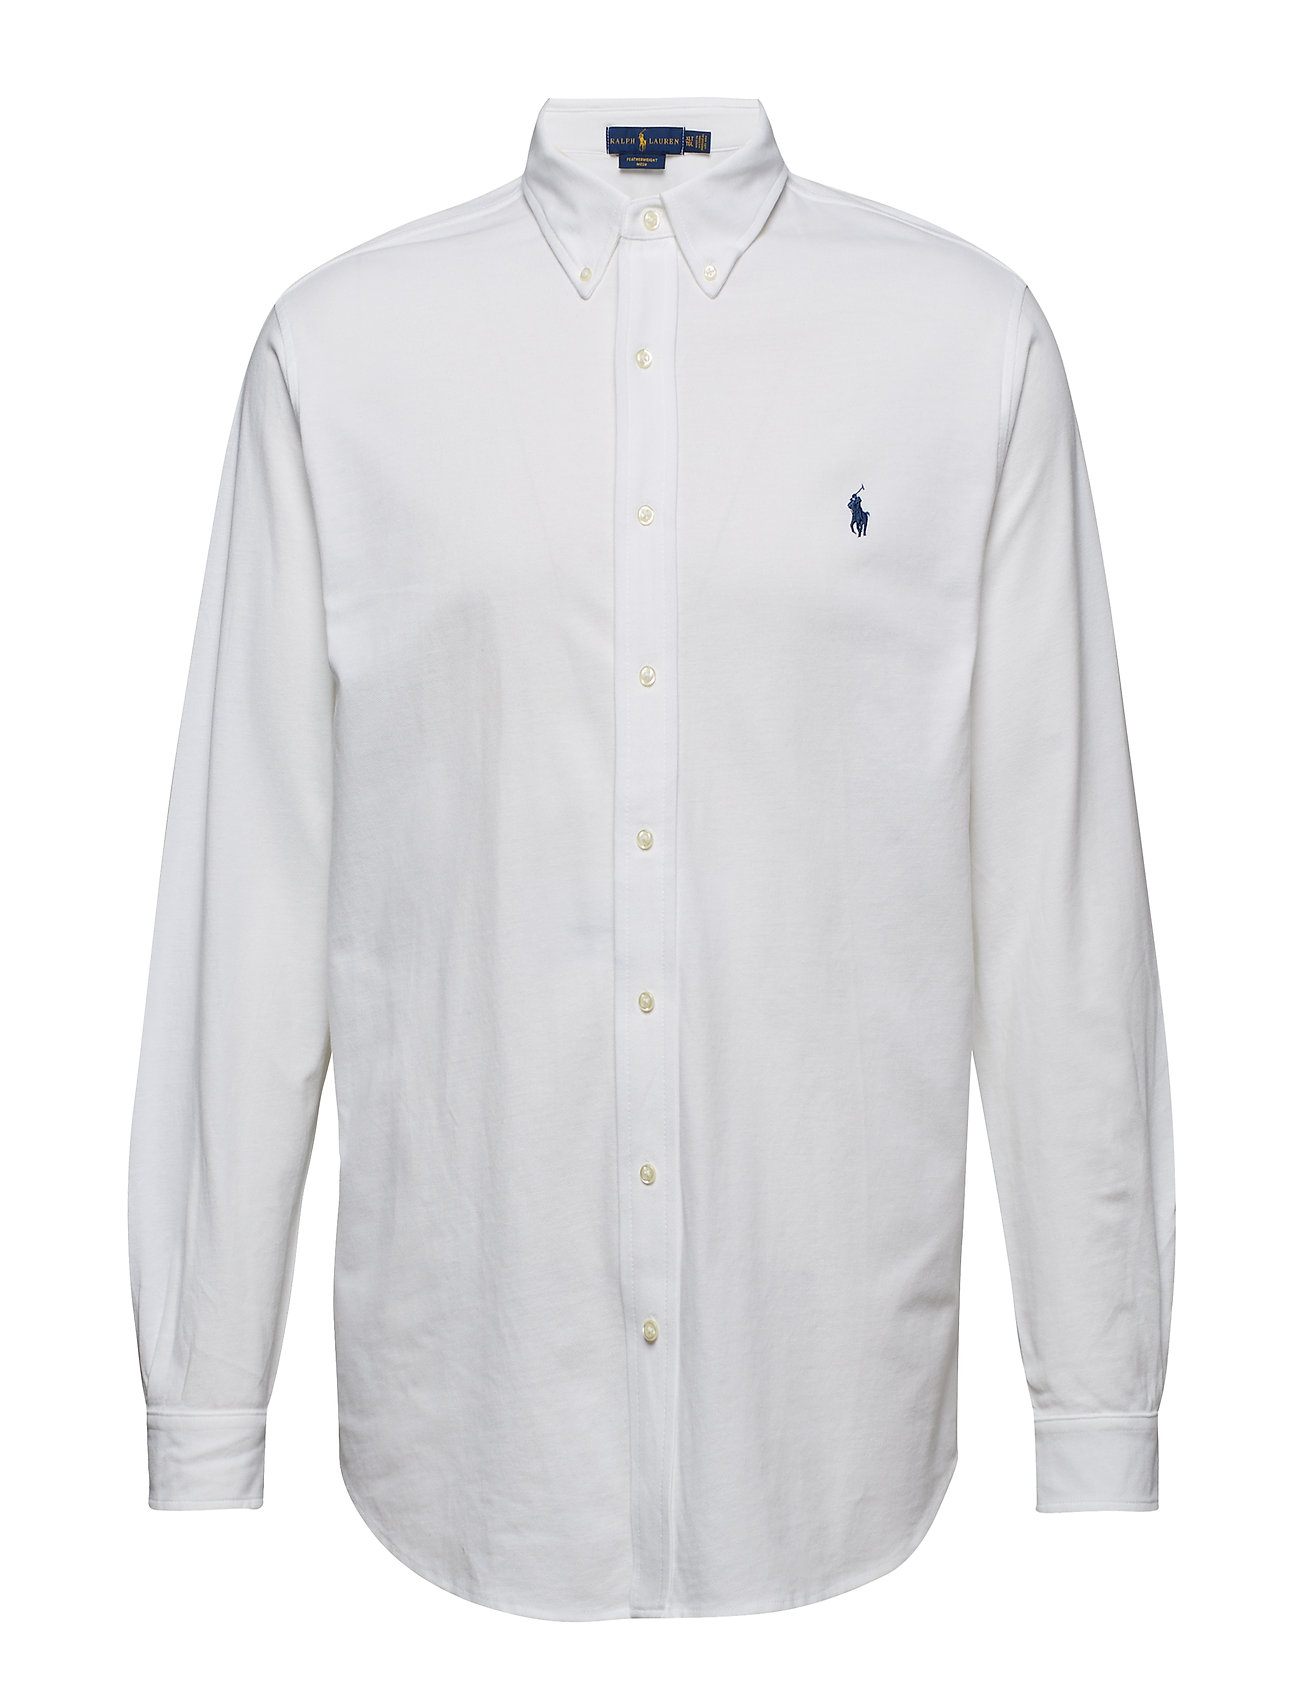 Polo Ralph Lauren Big & Tall Classic Fit Featherweight Mesh Shirt - WHITE